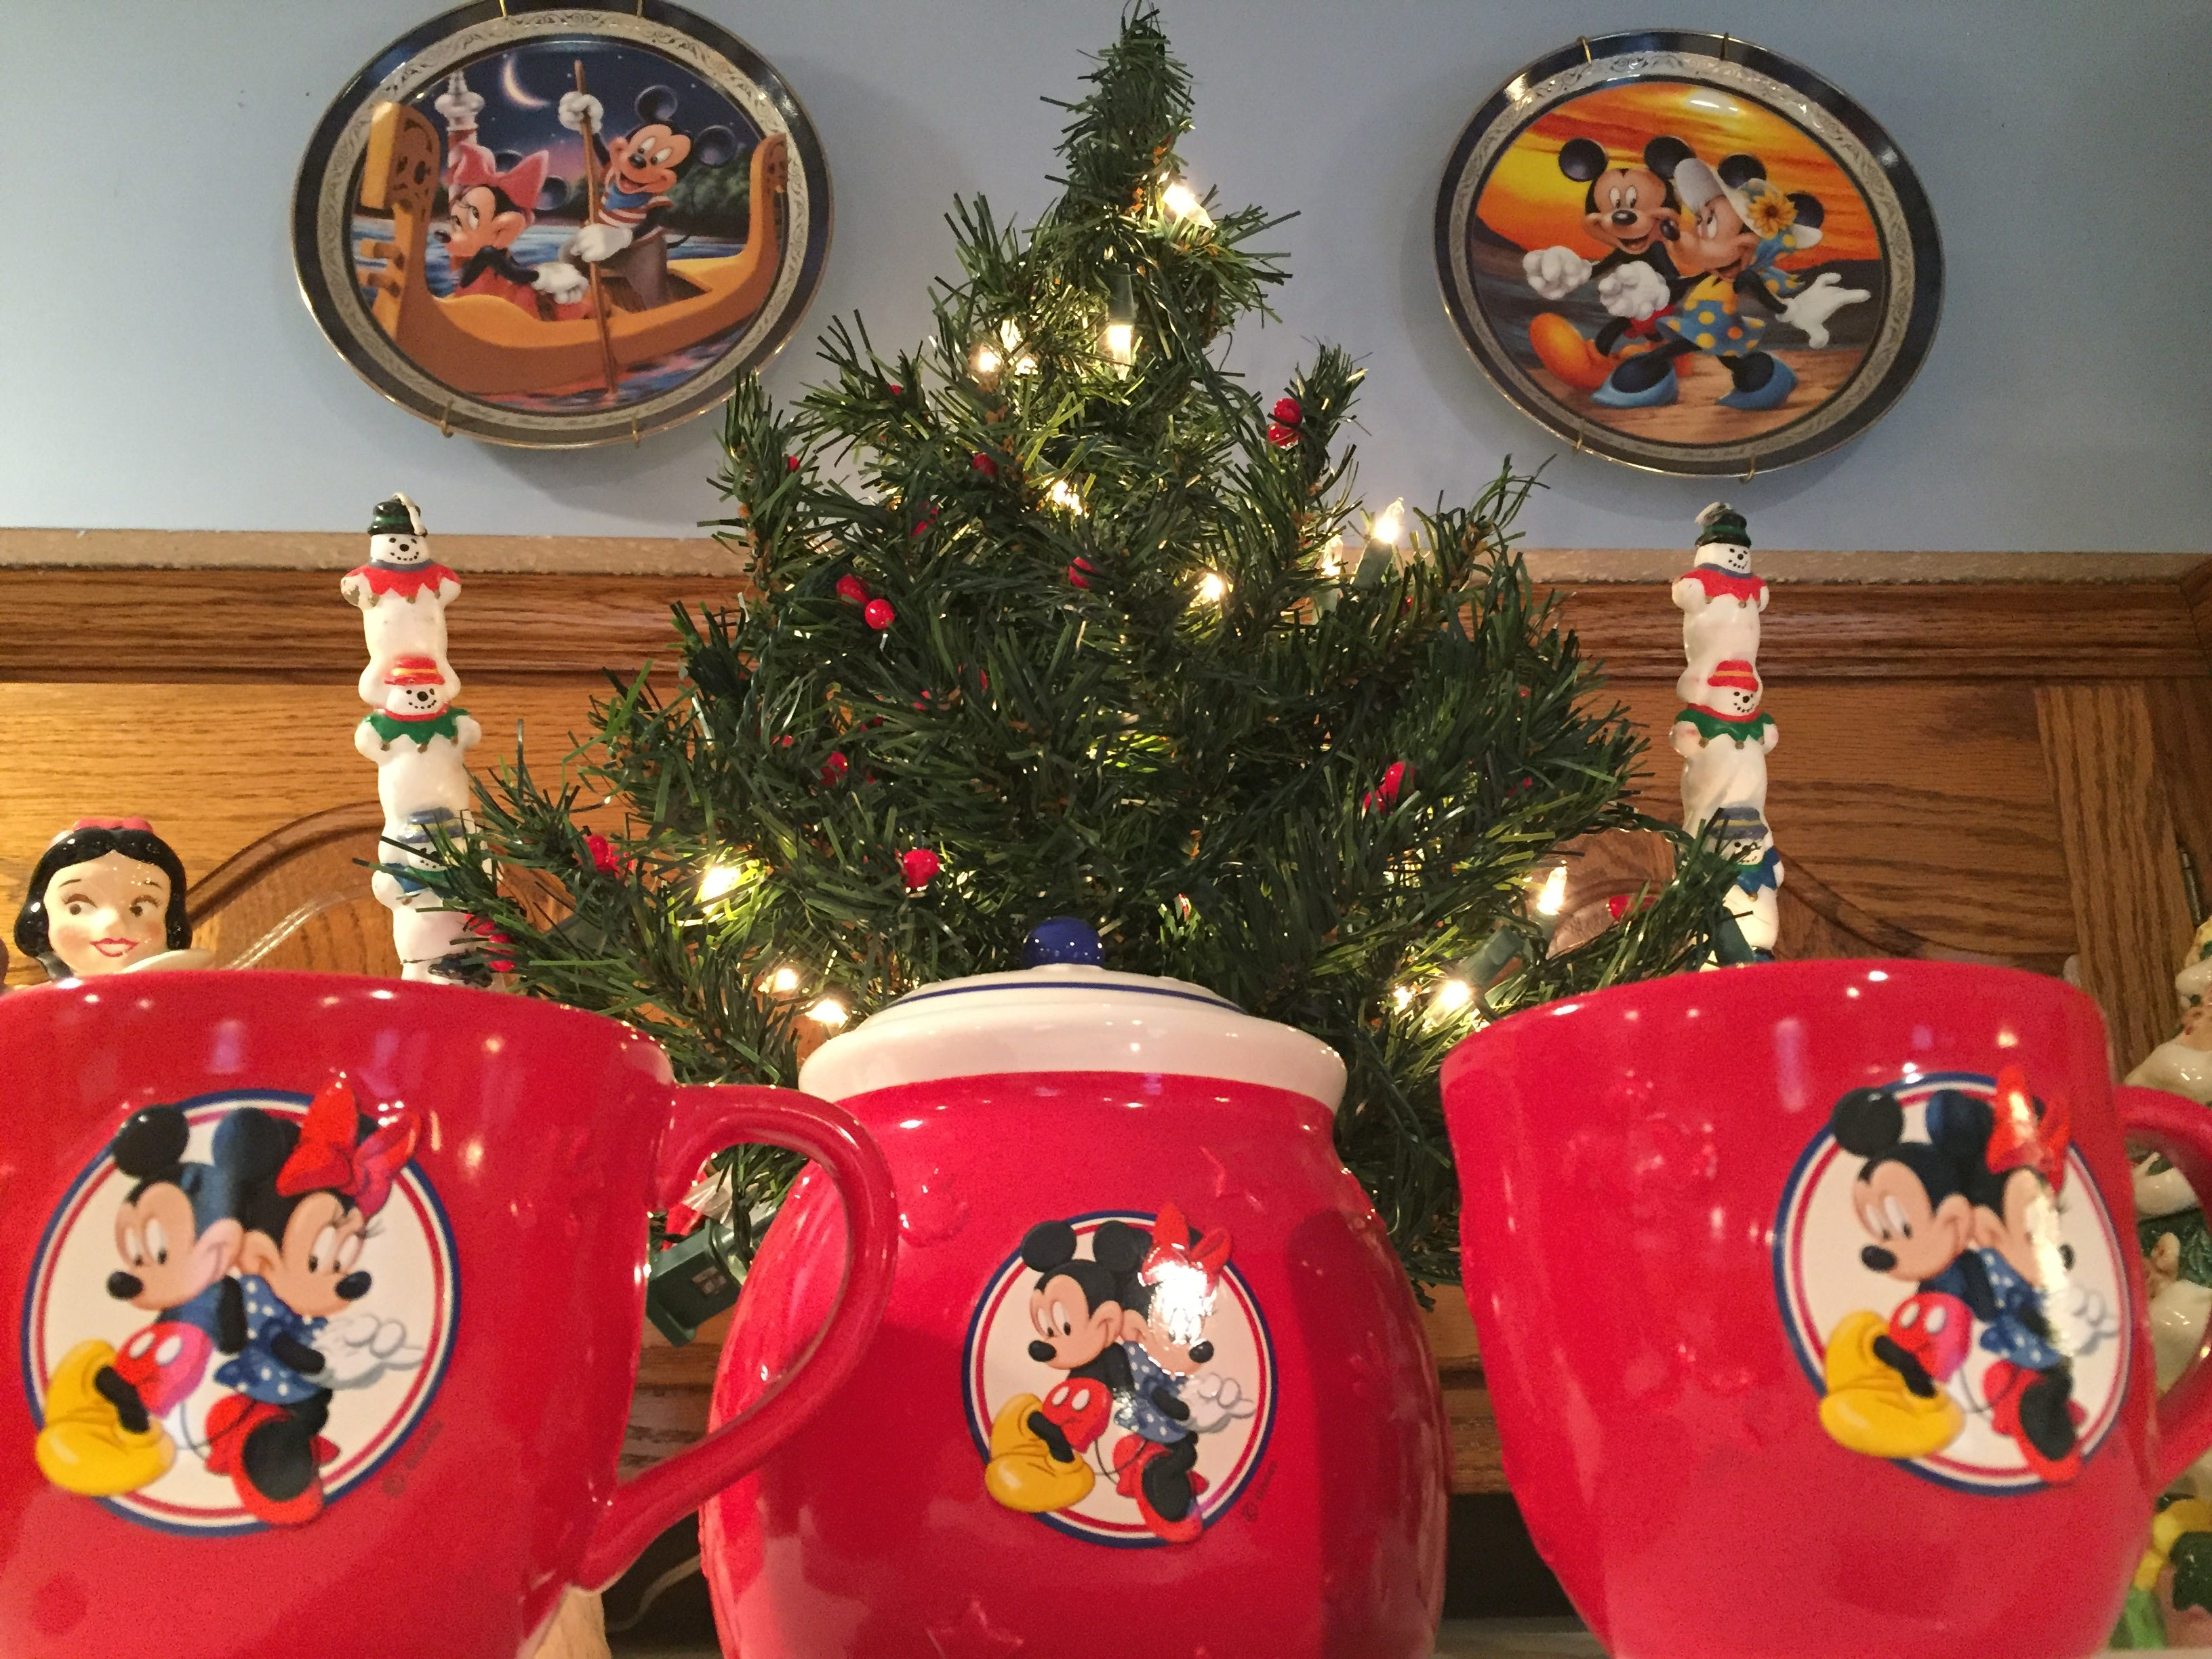 Donna and Paul Miller pull out all the stops on their Disney-themed Christmas each year for their kids', grandkids' and friends' enjoyment.